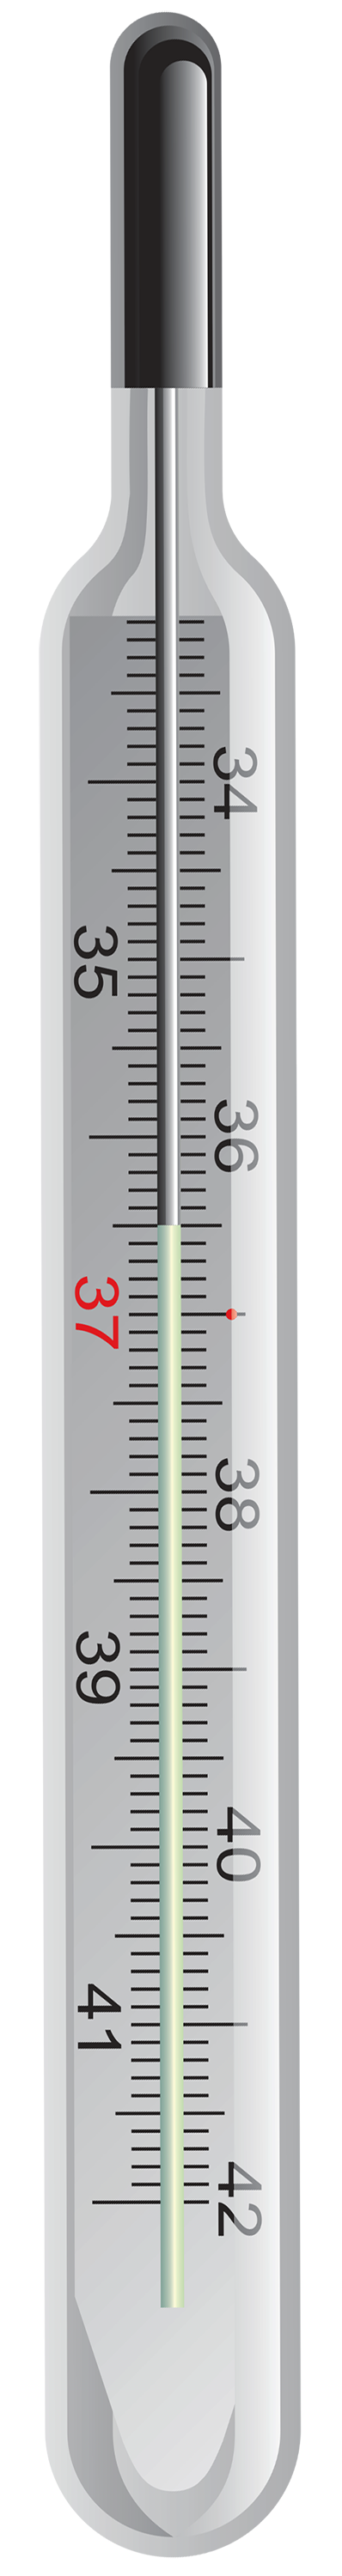 Png clip art best. Clipart thermometer outdoor thermometer